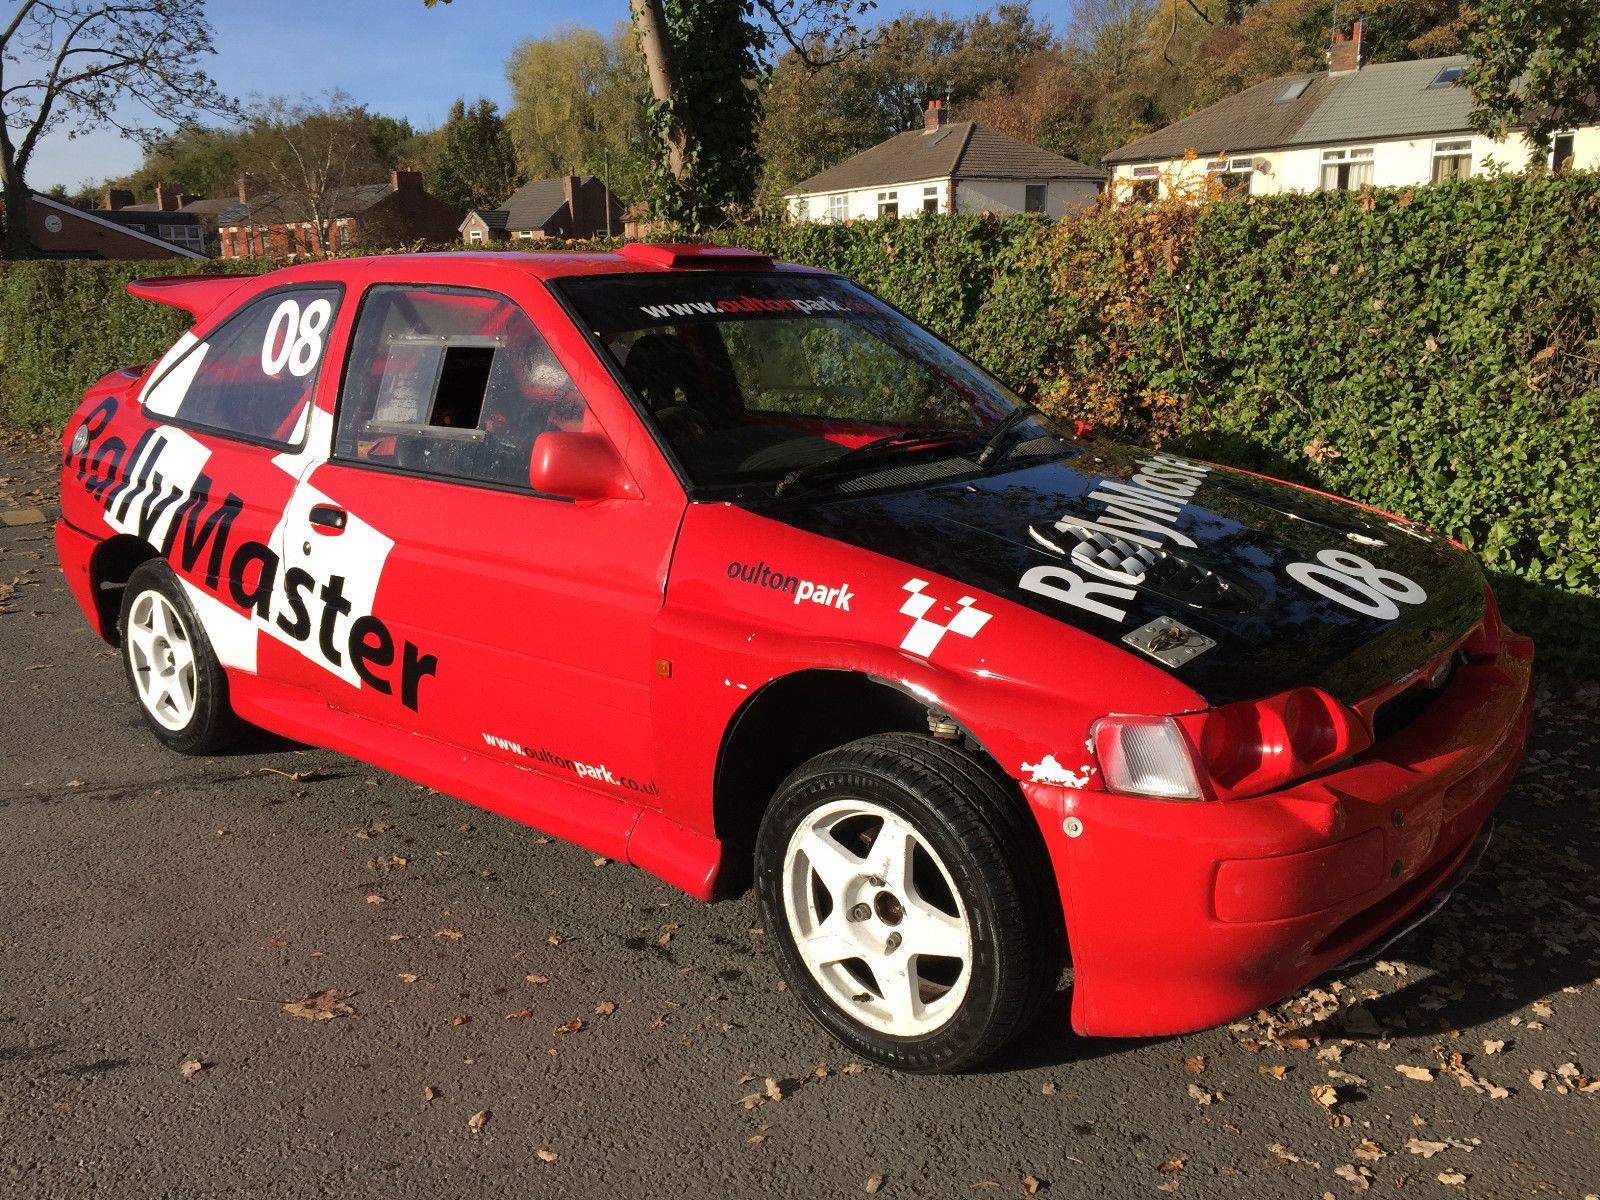 Ford Escort Cosworth Group N Rally Car THIS LISTING IS FOR A FORD ...